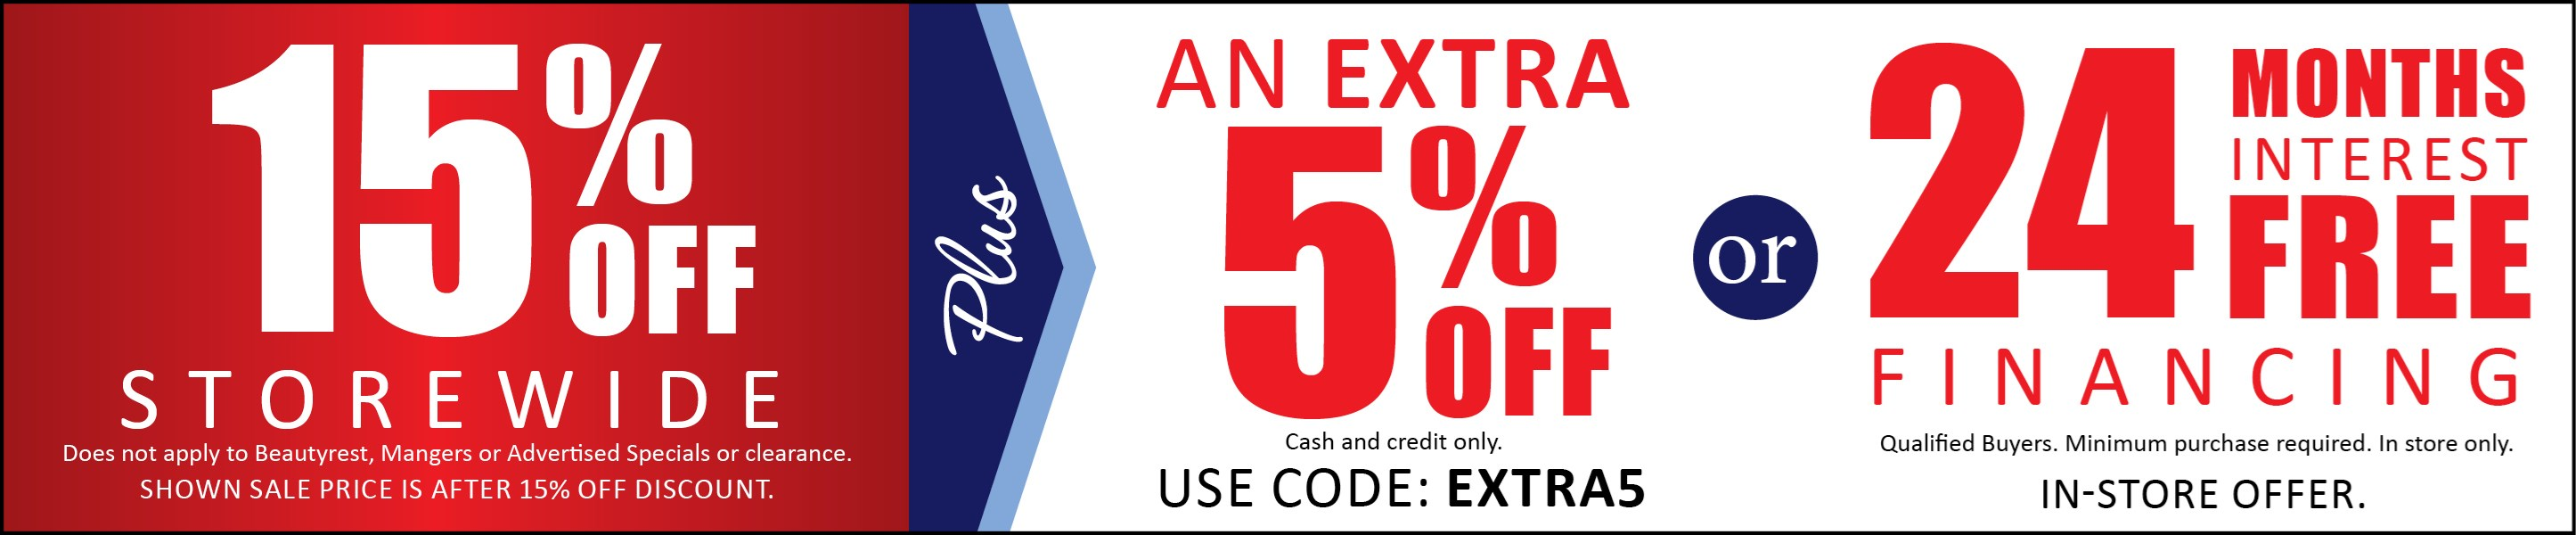 15% Off plus an EXTRA 5% OFF